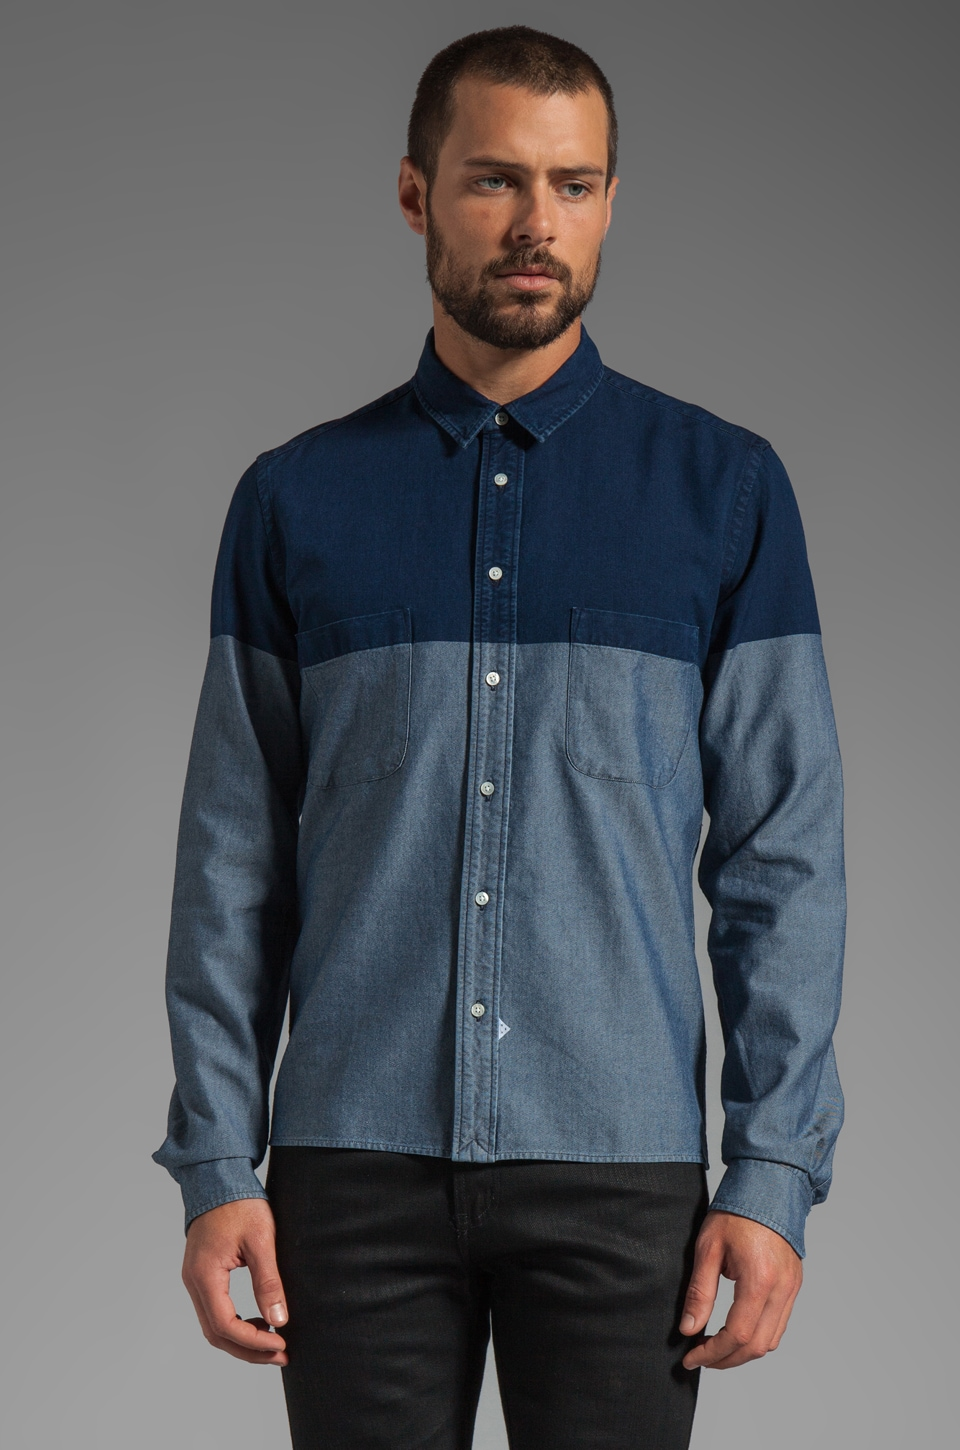 Sidian, Ersatz & Vanes Slim and Cropped Shirt w/ Pockets and Straight Hem in Indigo